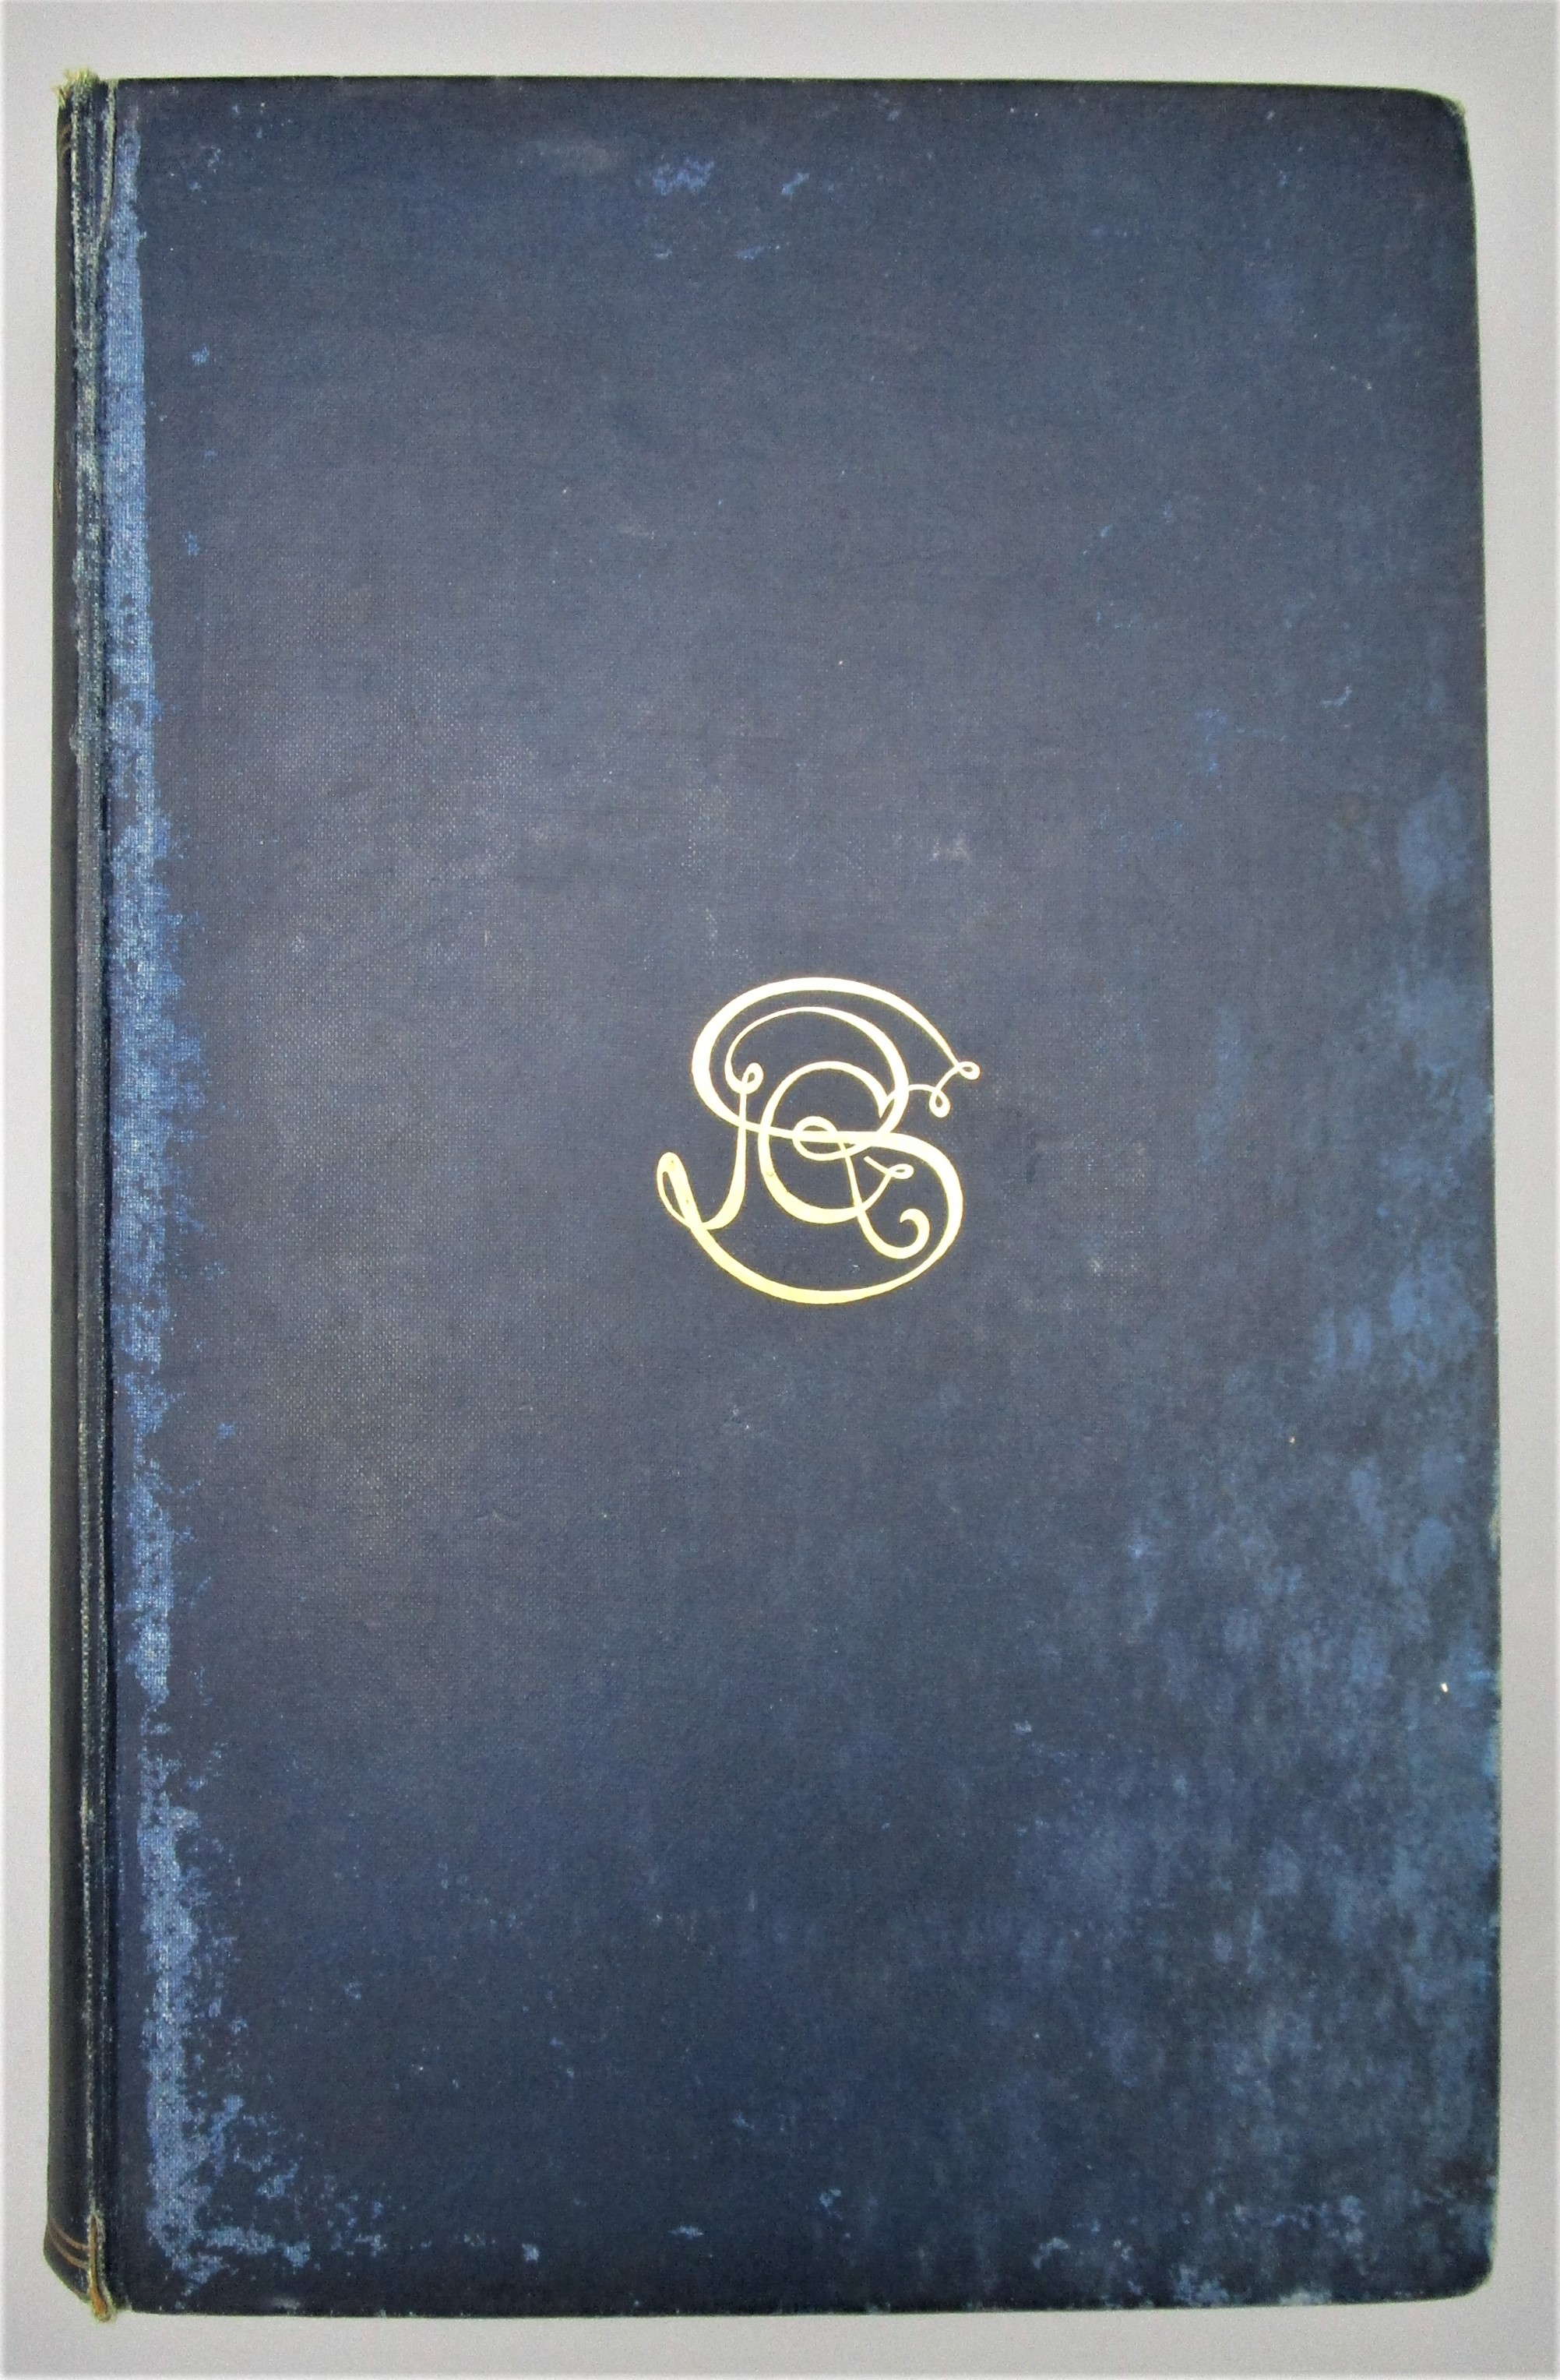 COL SIR ROBERT SANDEMAN: LIFE & WORK ON INDIAN FRONTIER, by Thomas H. Thornton - 1895